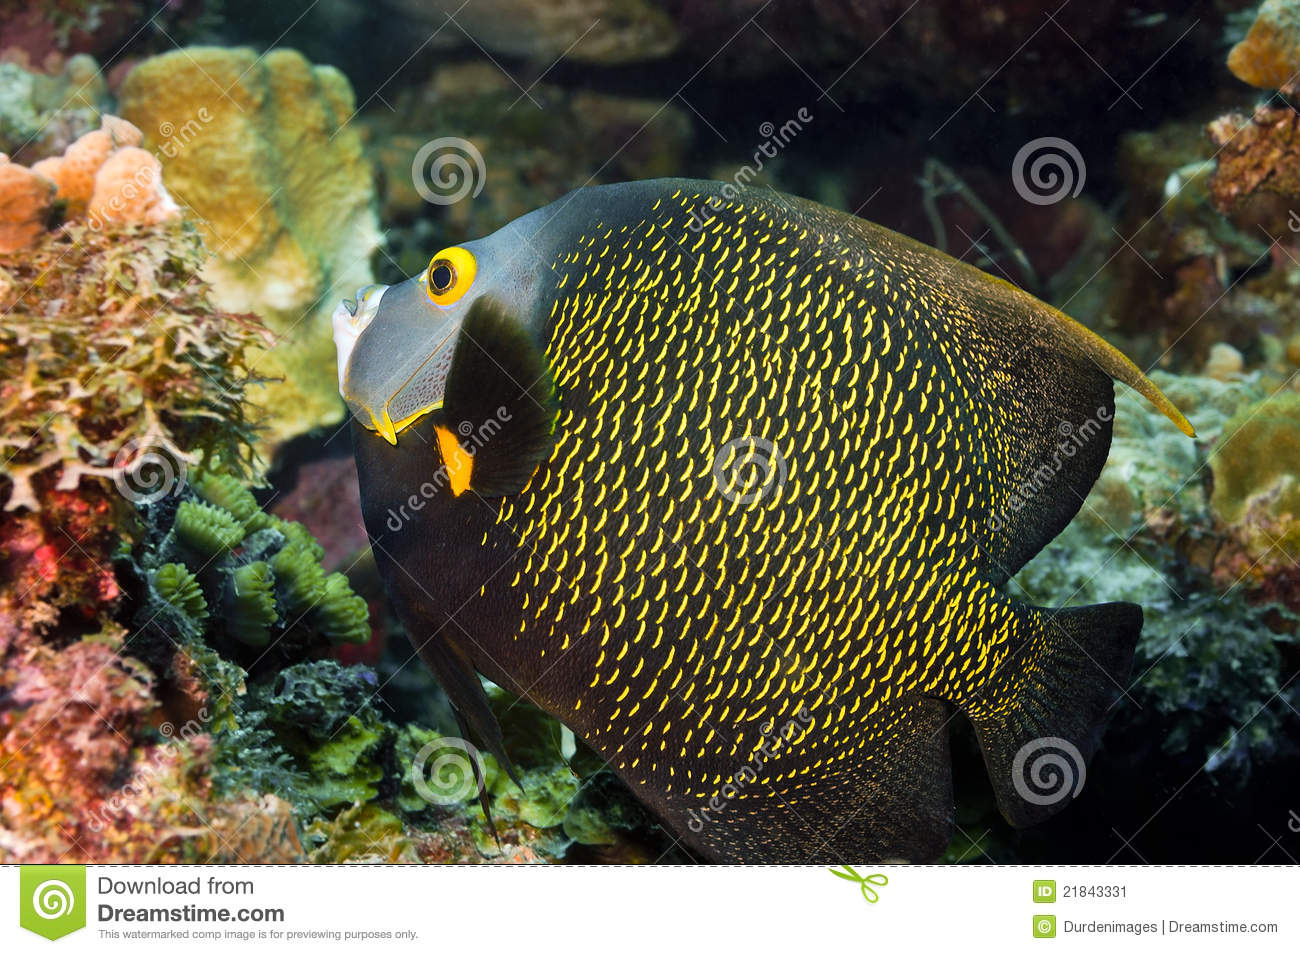 French angelfish hovers next to the reef displaying its vibrant